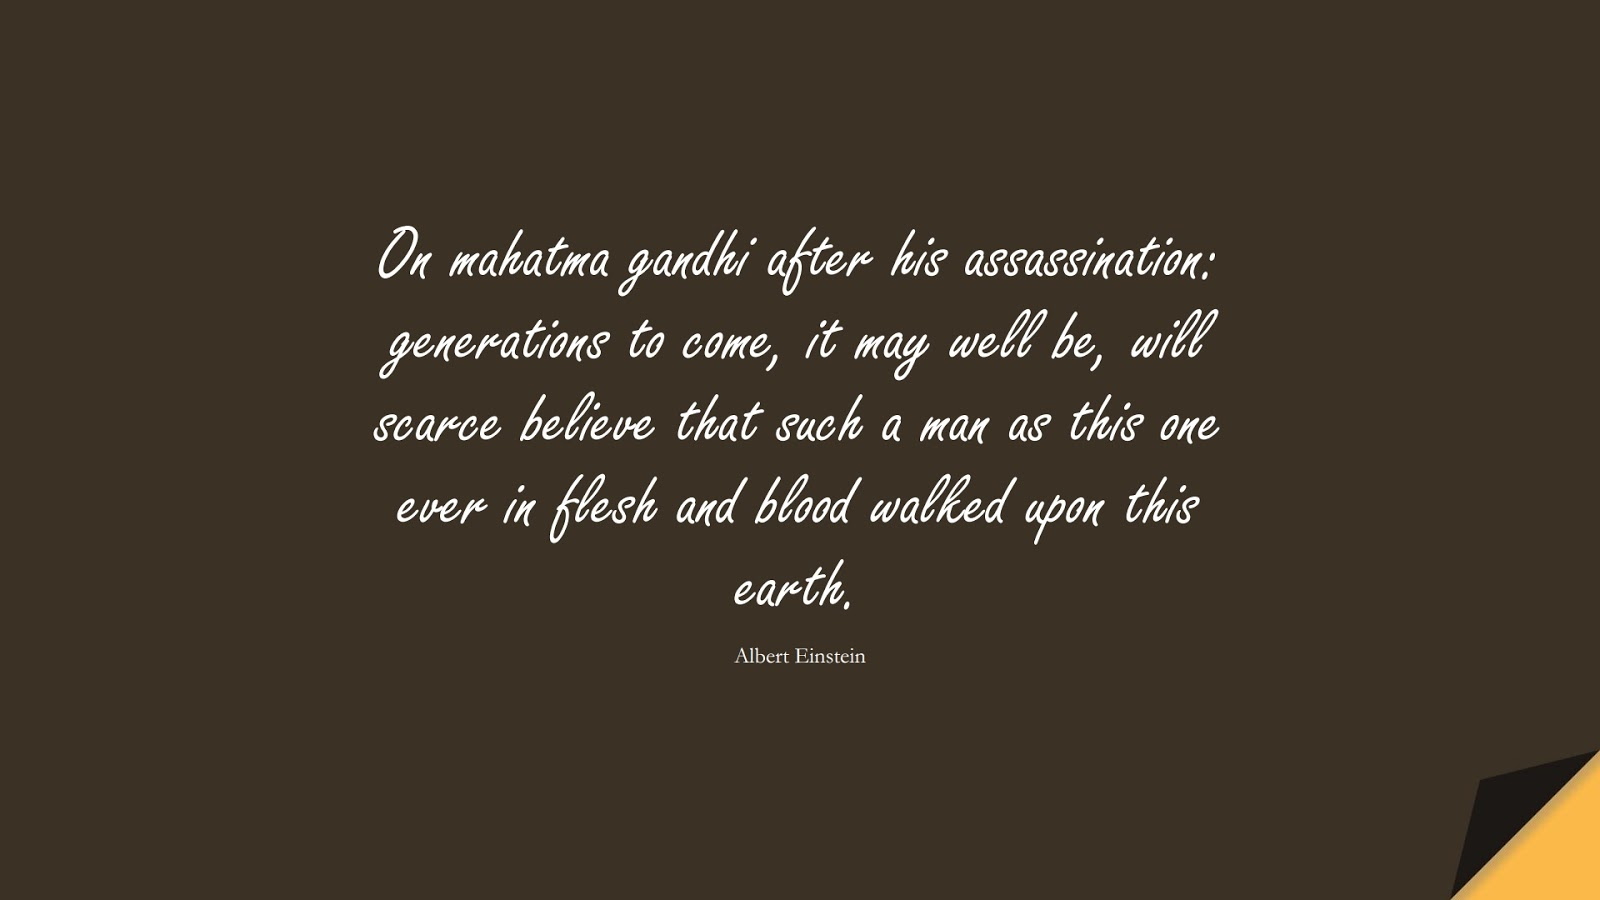 On mahatma gandhi after his assassination: generations to come, it may well be, will scarce believe that such a man as this one ever in flesh and blood walked upon this earth. (Albert Einstein);  #AlbertEnsteinQuotes